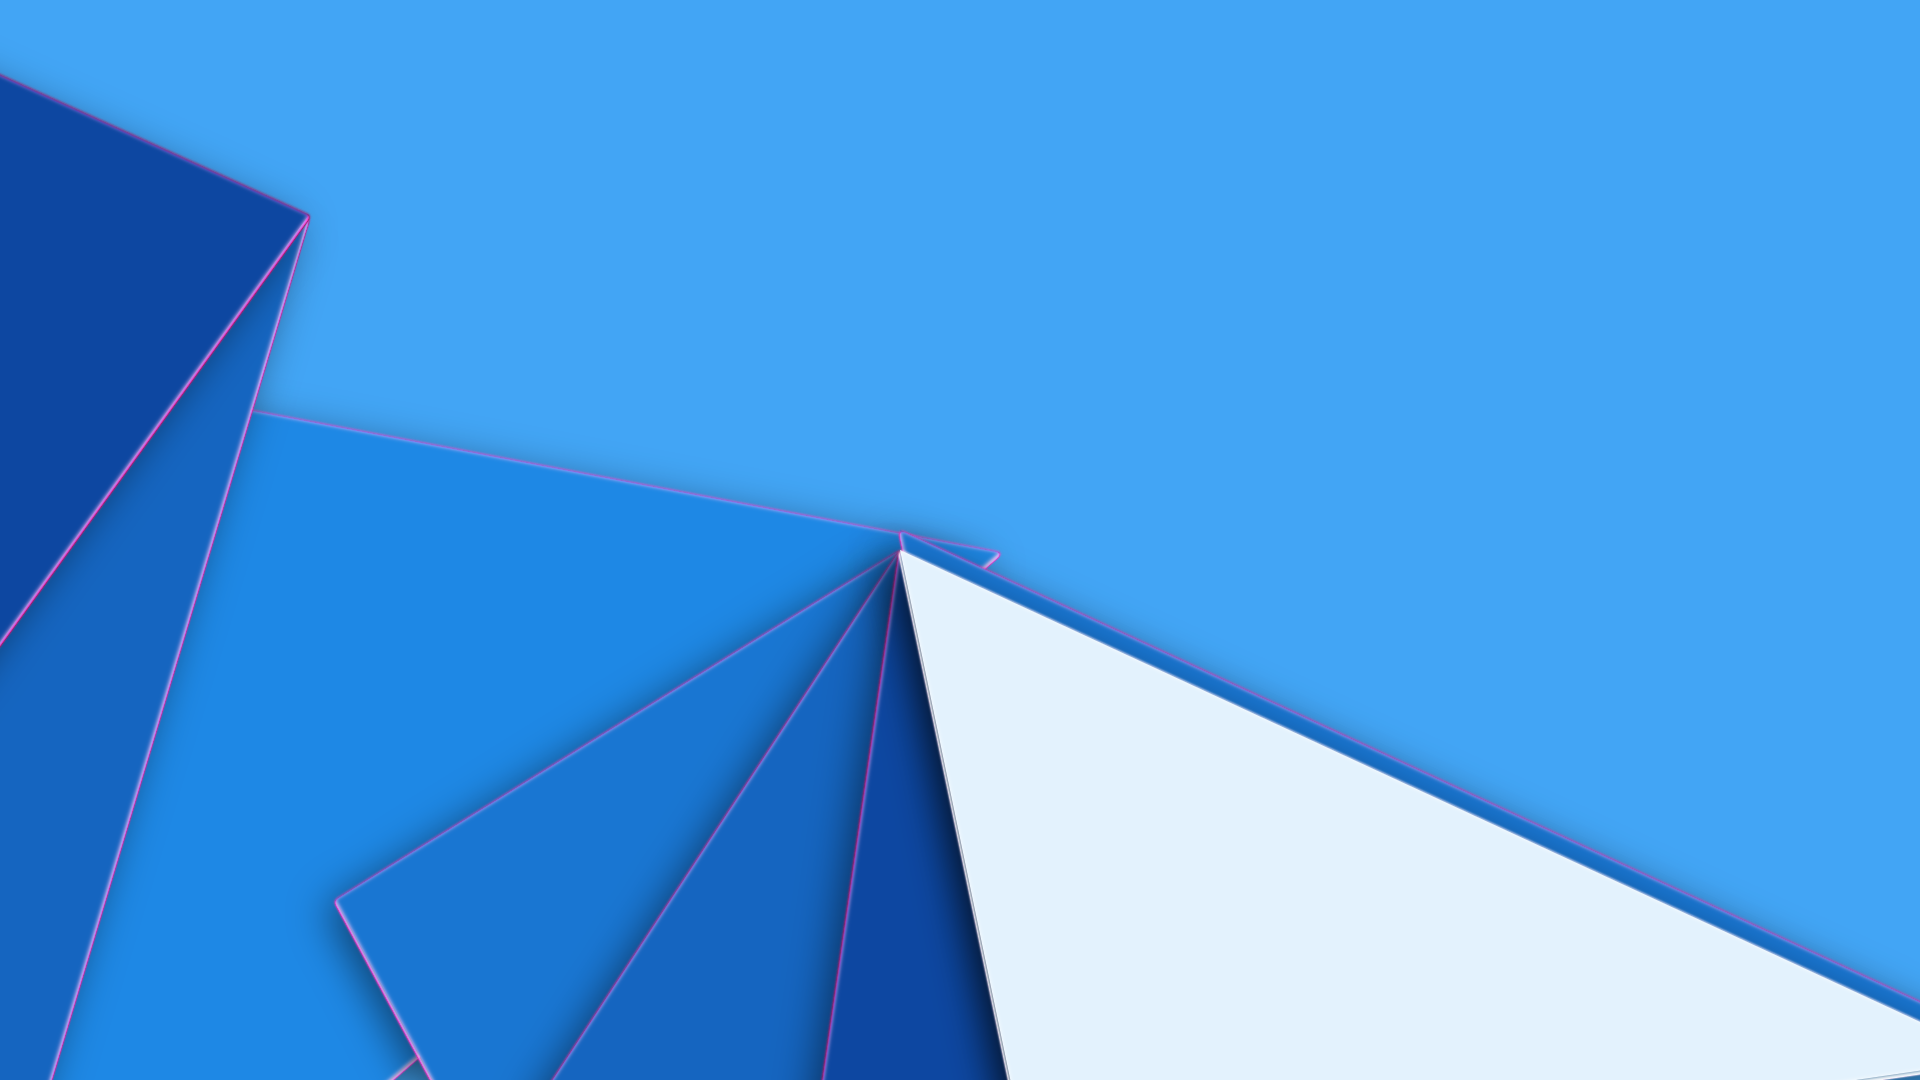 material design wallpaper blue - photo #44